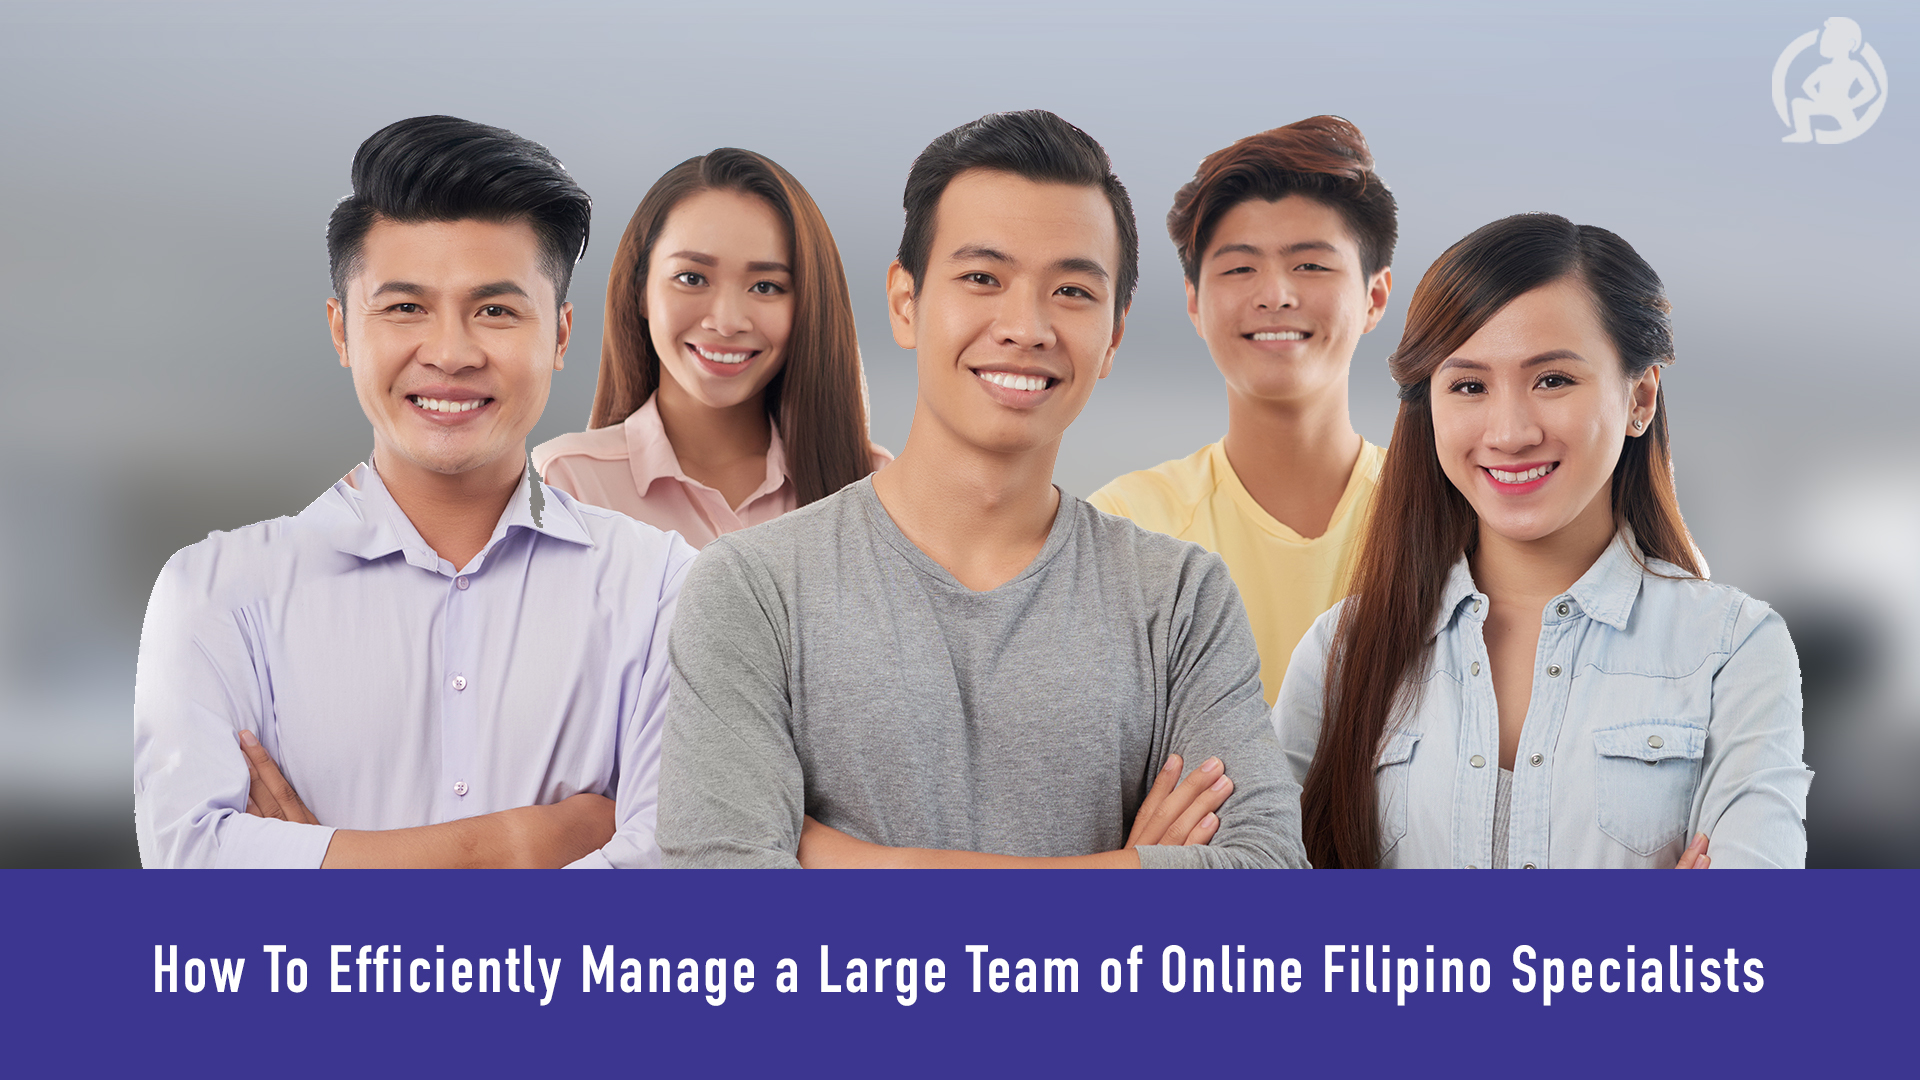 How To Efficiently Manage a Large Team of Online Filipino Specialists – Practical Advice